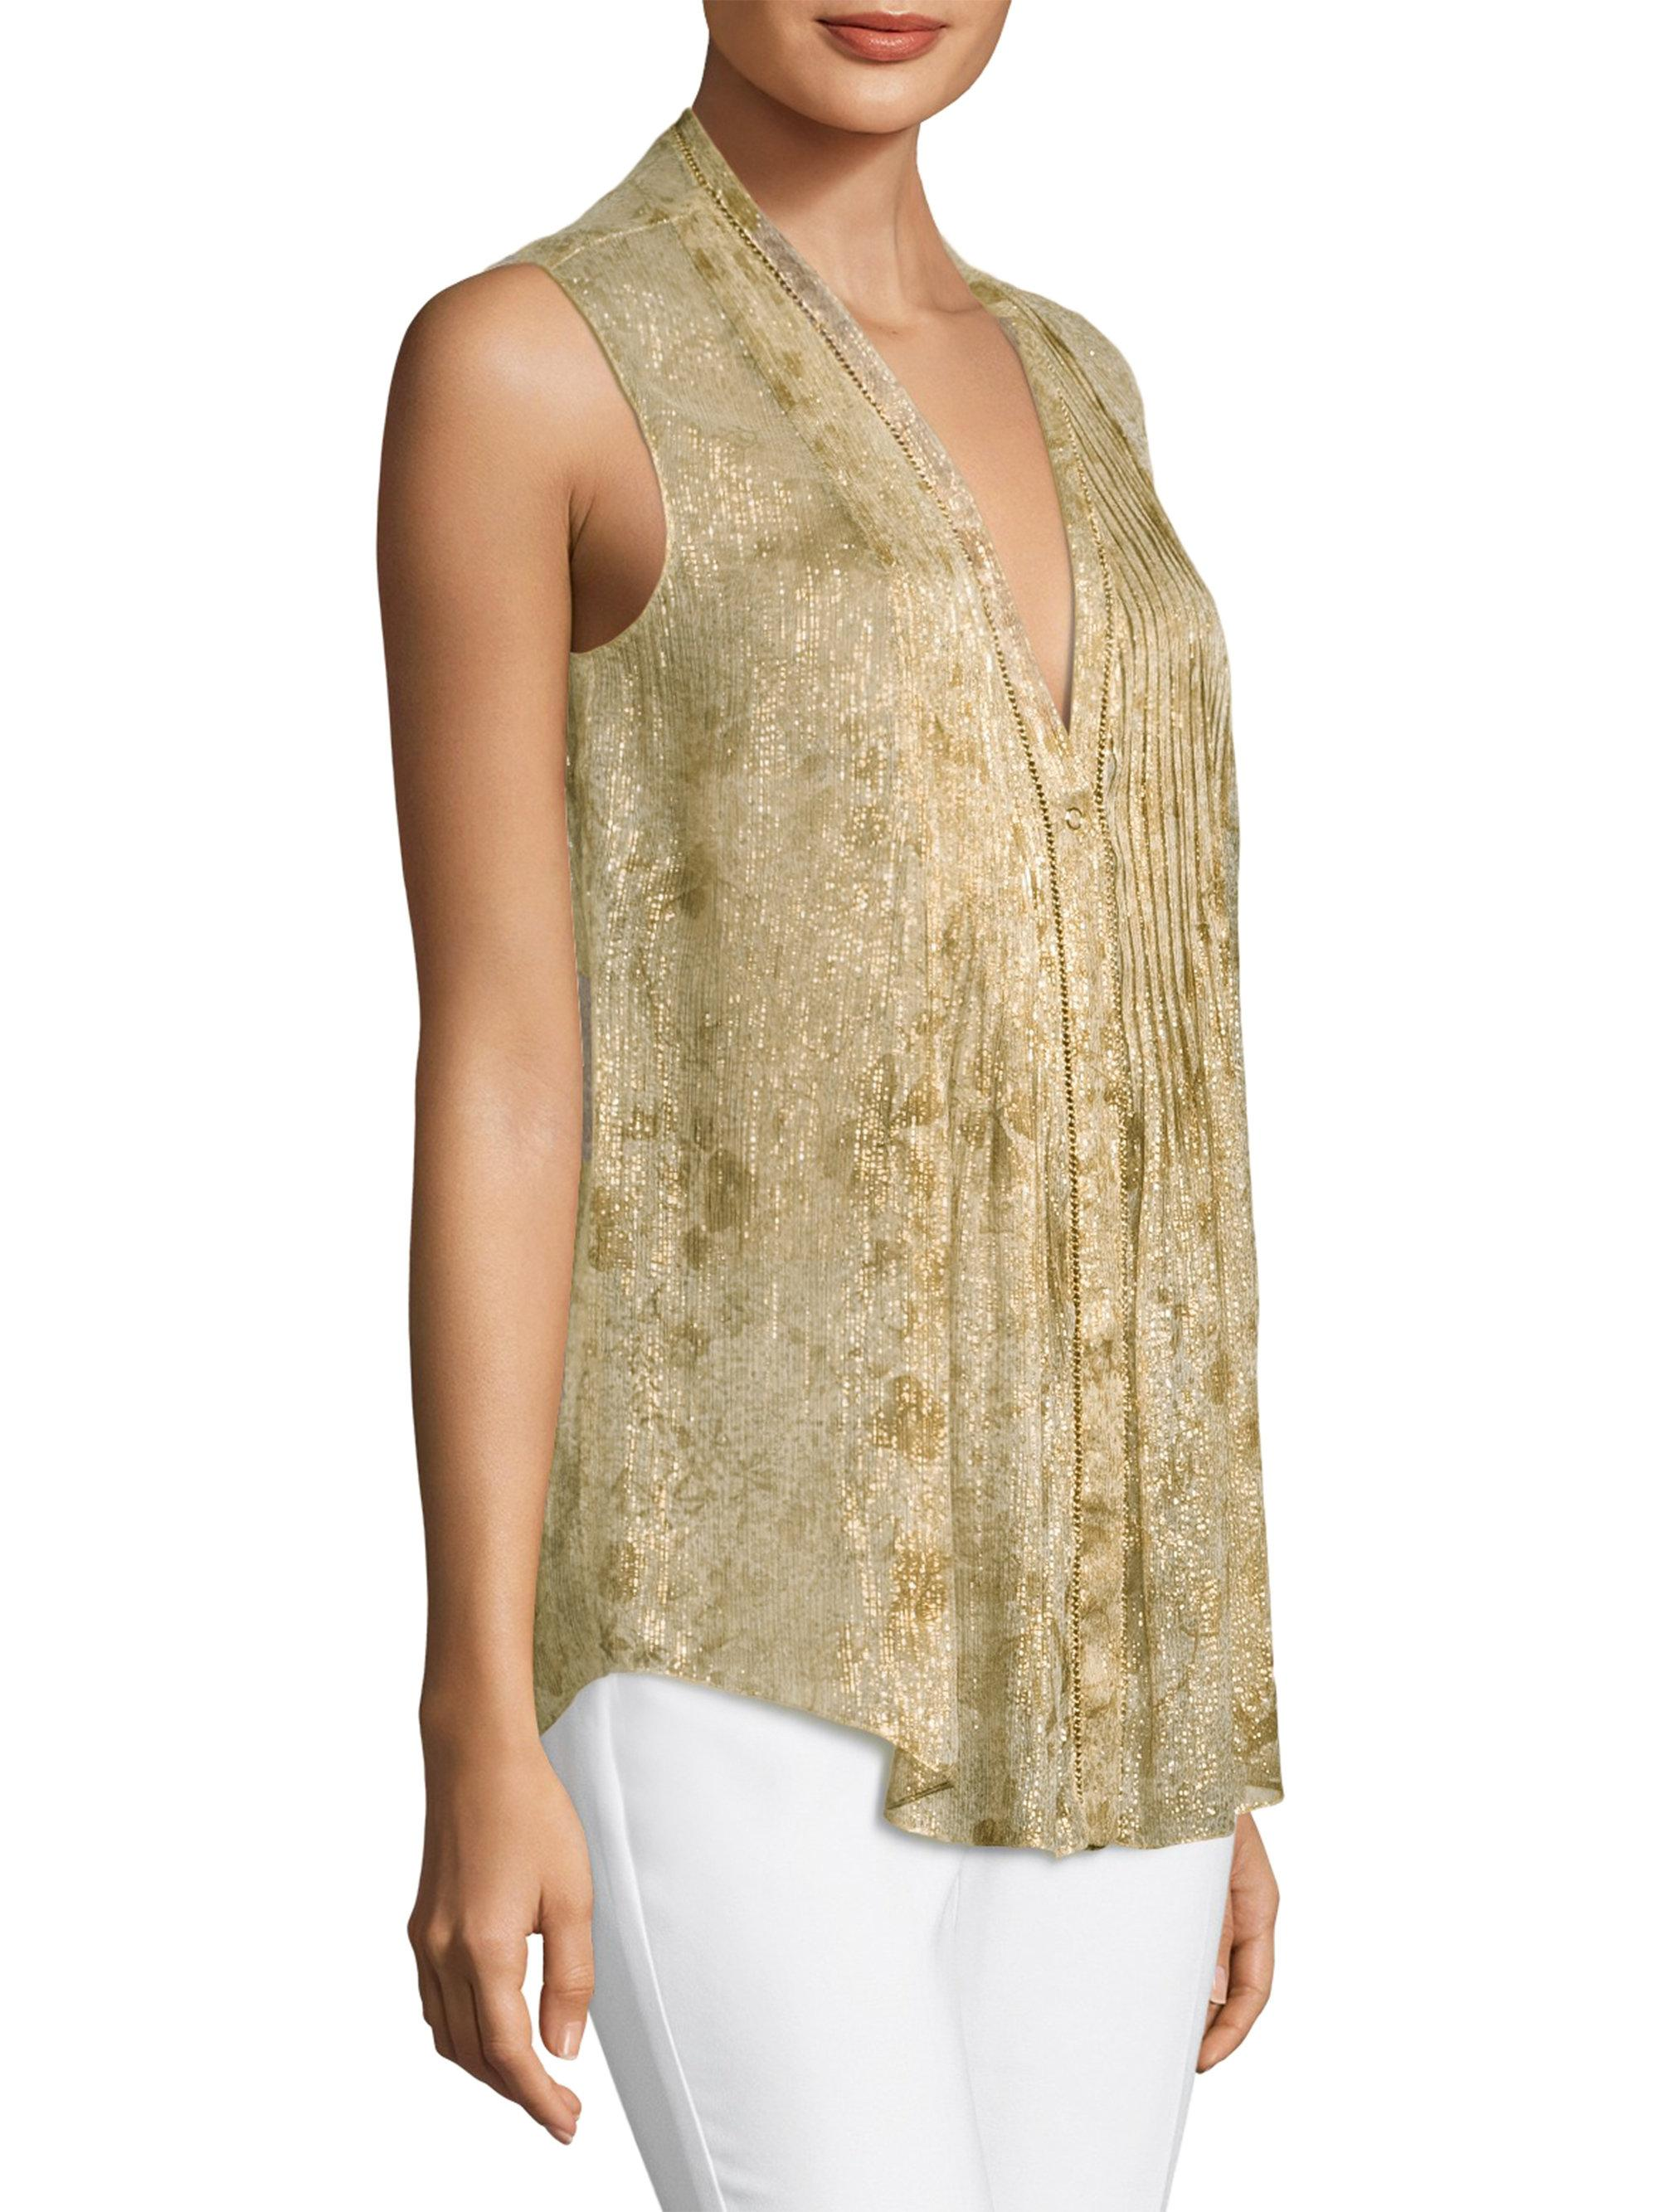 da9bdfd4519a38 Elie Tahari Ellis Metallic Blouse in Metallic - Lyst